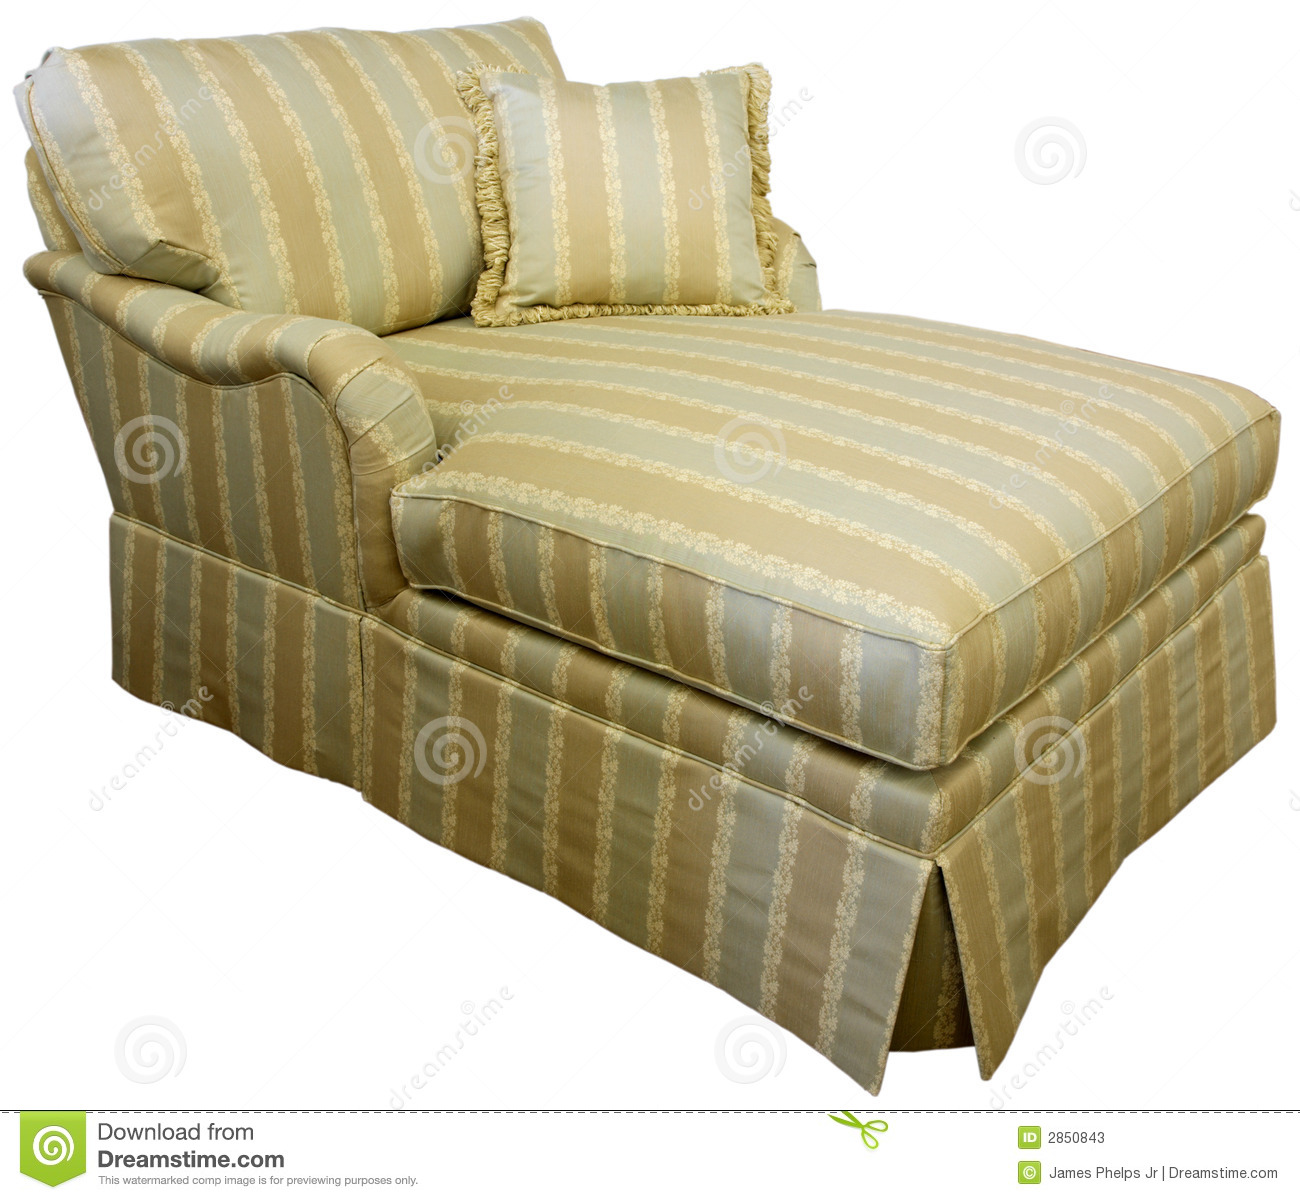 Chaise lounge sofa stock image image of sofa stuffed for 1x super comfort recliner chaise